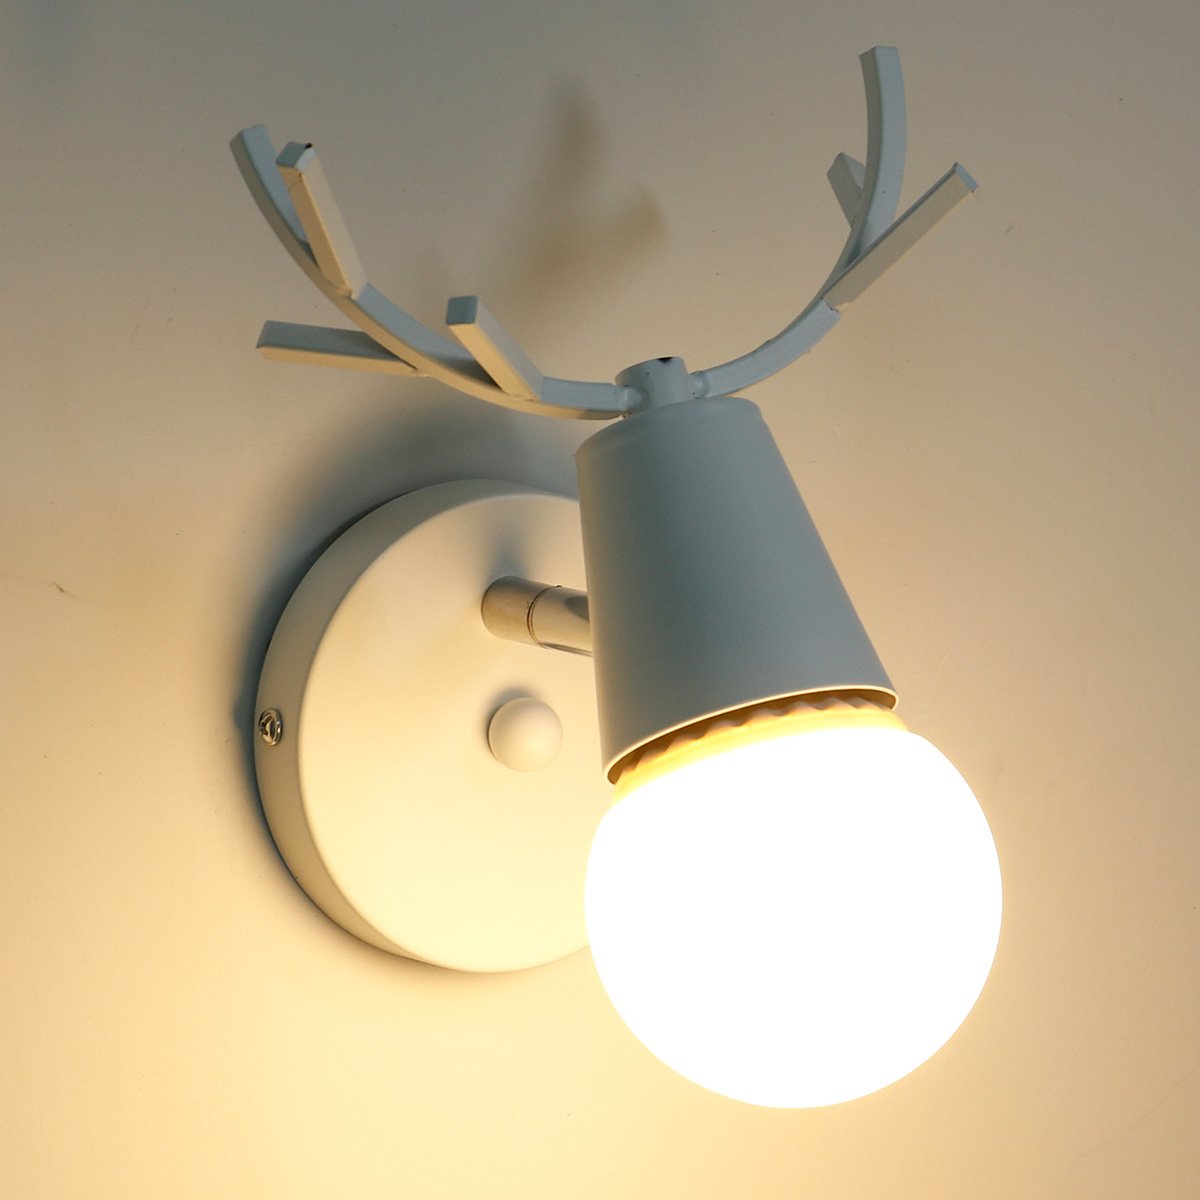 KAWELL Creative Wall Light Modern Wall Lamp Simple Wall Scone Iron E27 Base Deer Head Nordic Style Art Deco for Bedroom, Living Room, Children's Room, Restaurant, Hallway, Stairs, White